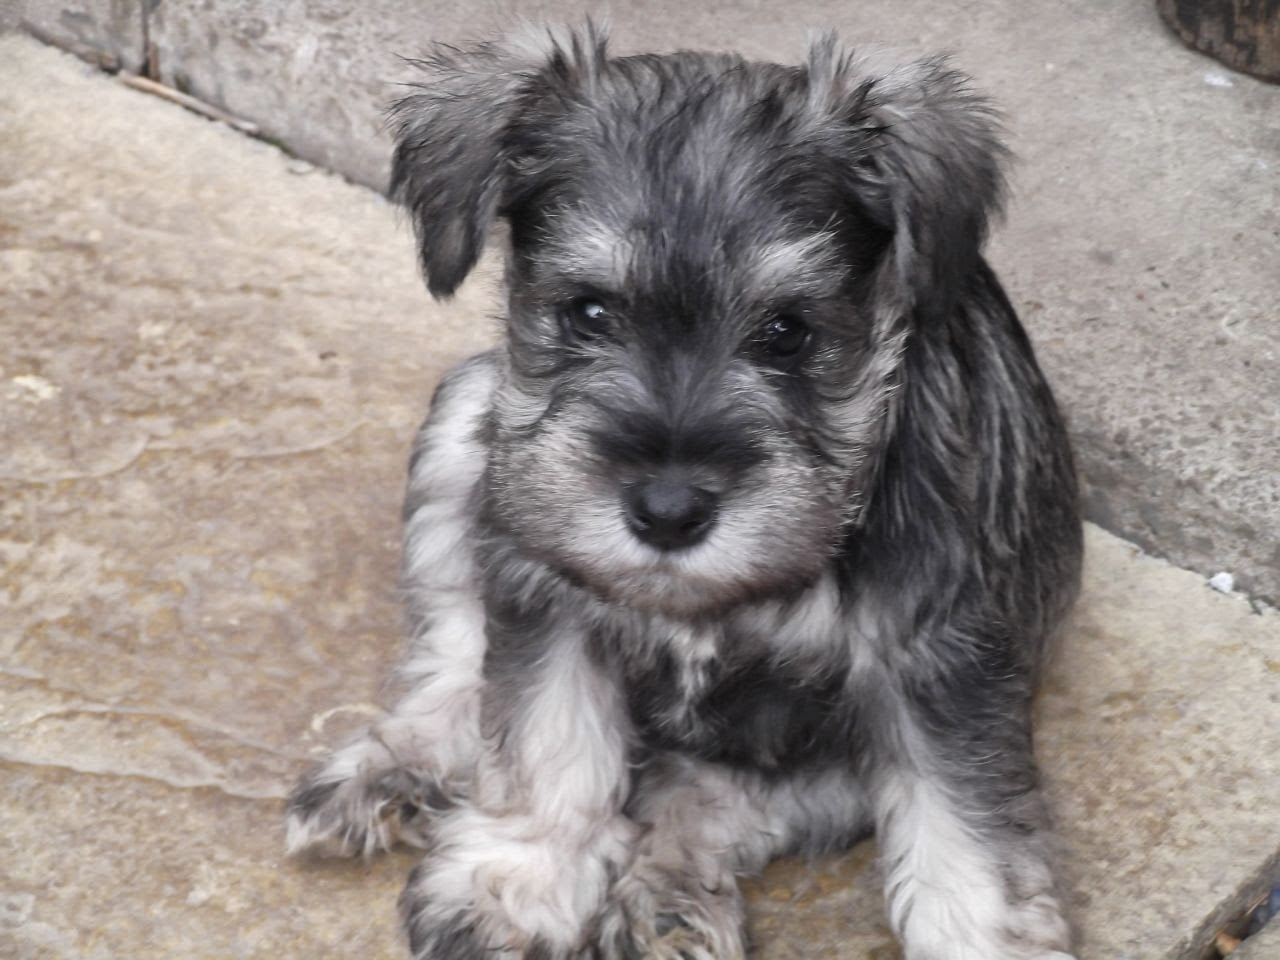 Bichon Frise Schnauzer Mix The mini schnauzer puppies are